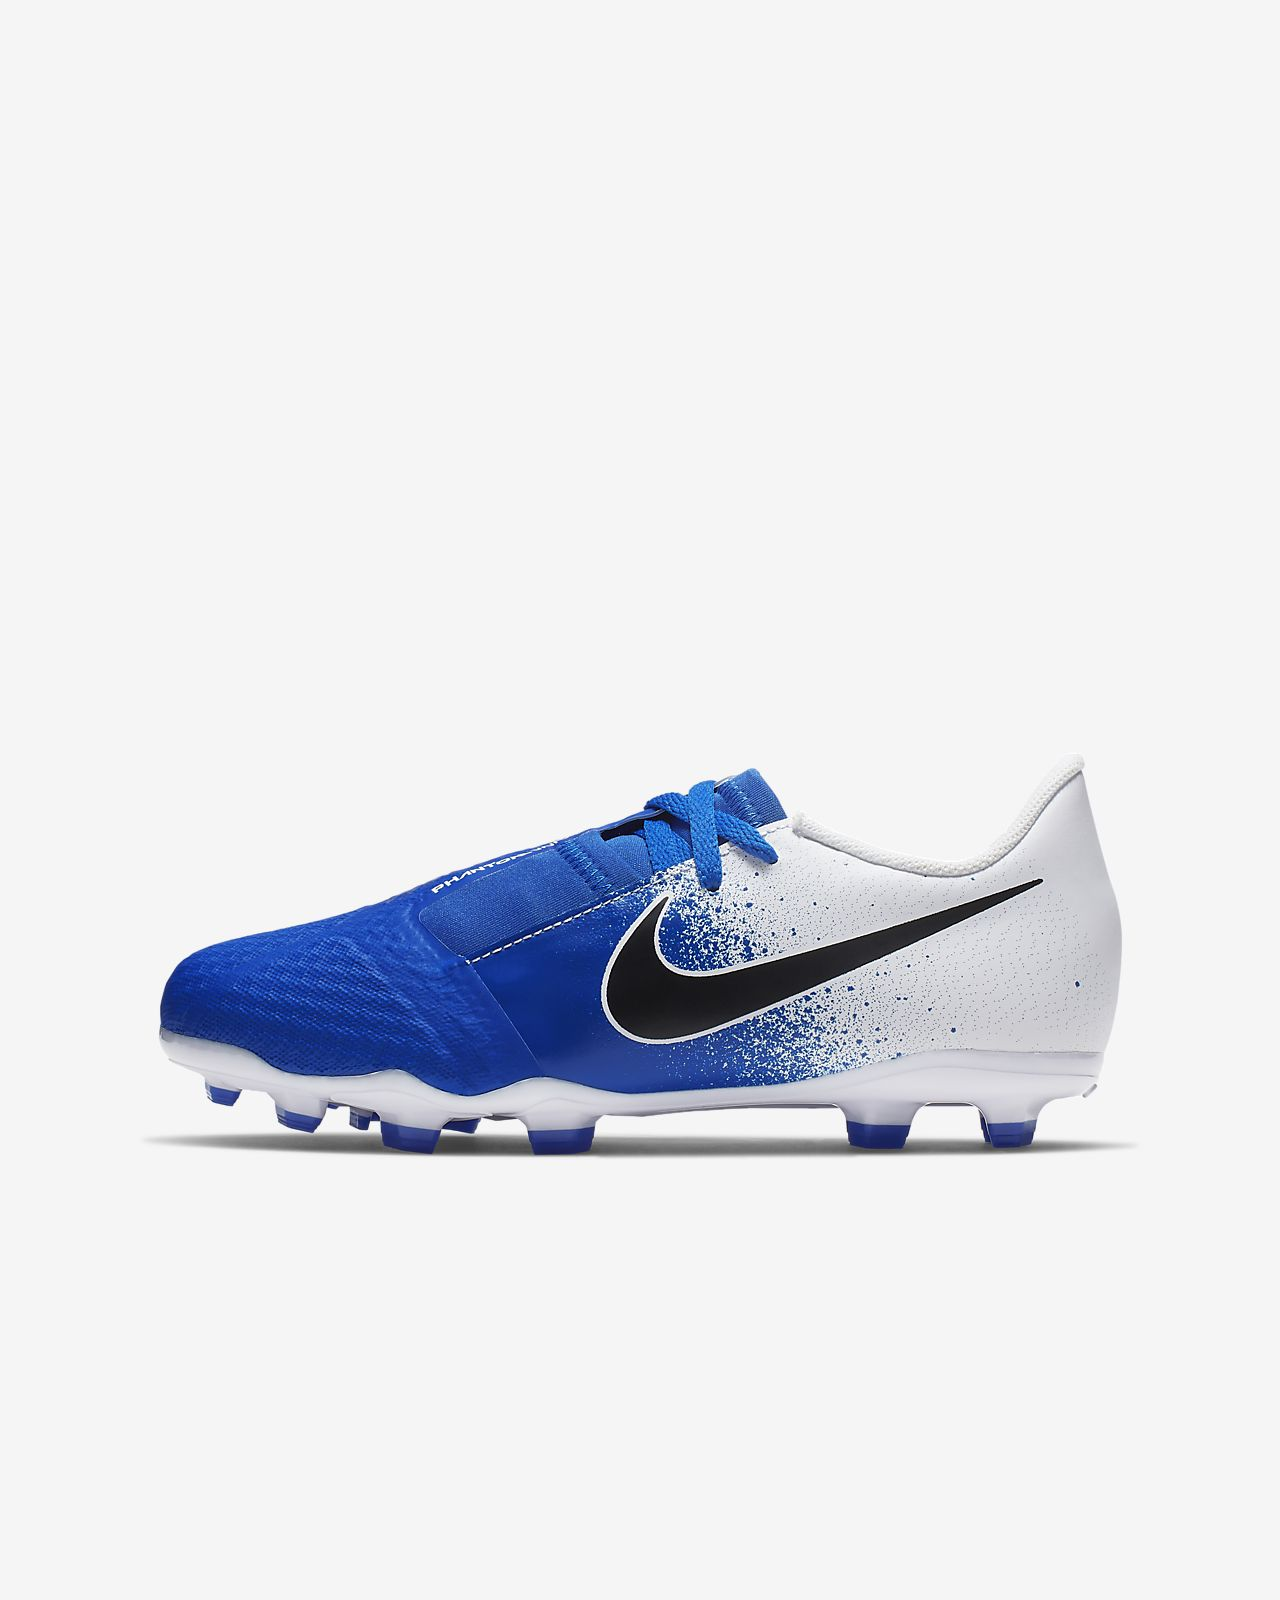 Nike Jr. Phantom Venom Academy FG Big Kids' Firm-Ground Soccer Cleat